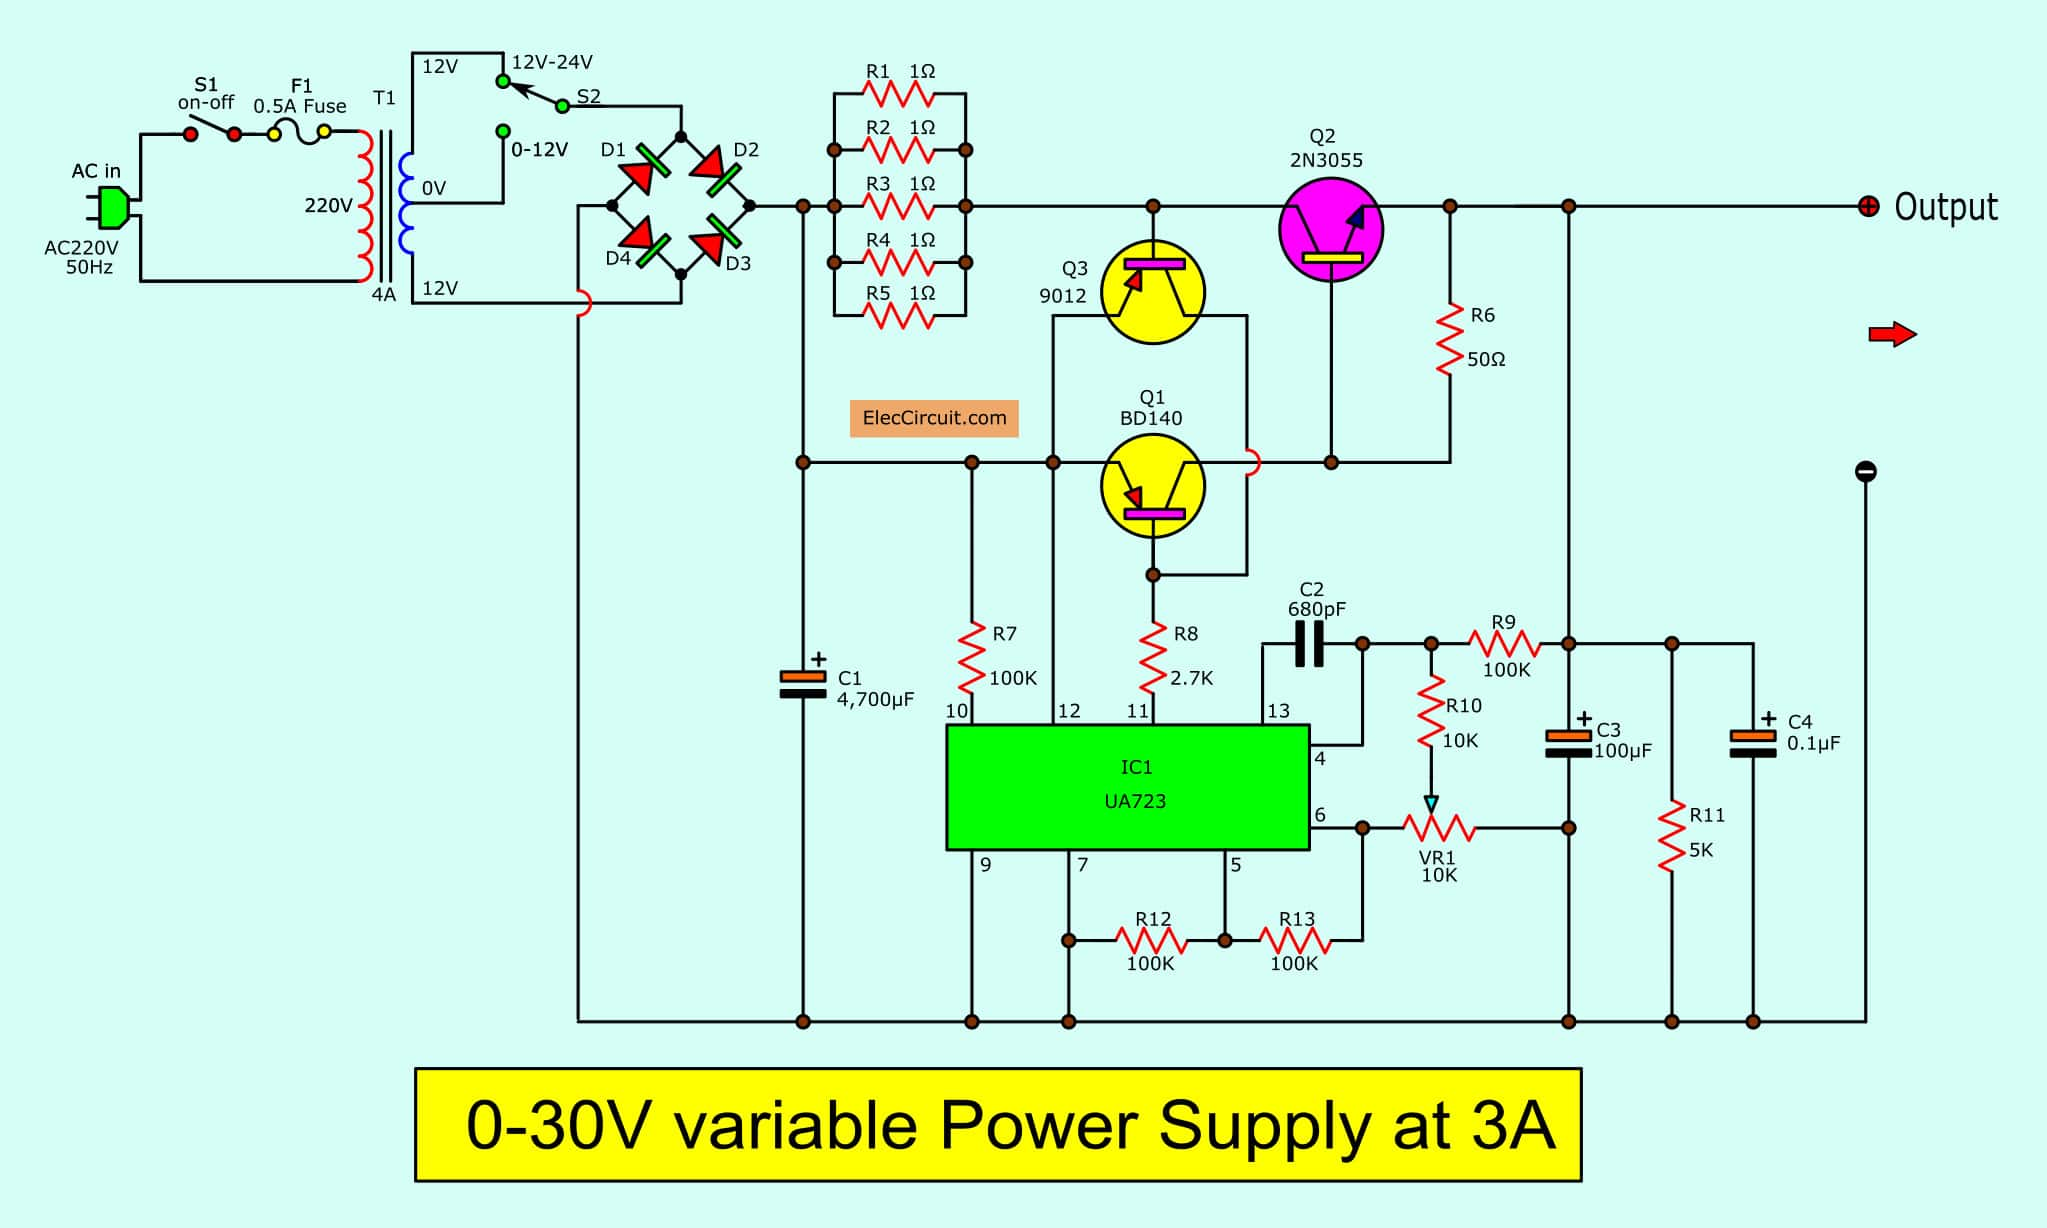 Fabulous Stabilizer Of Continuous Adjustment Powersupplycircuit Circuit Wiring Digital Resources Indicompassionincorg